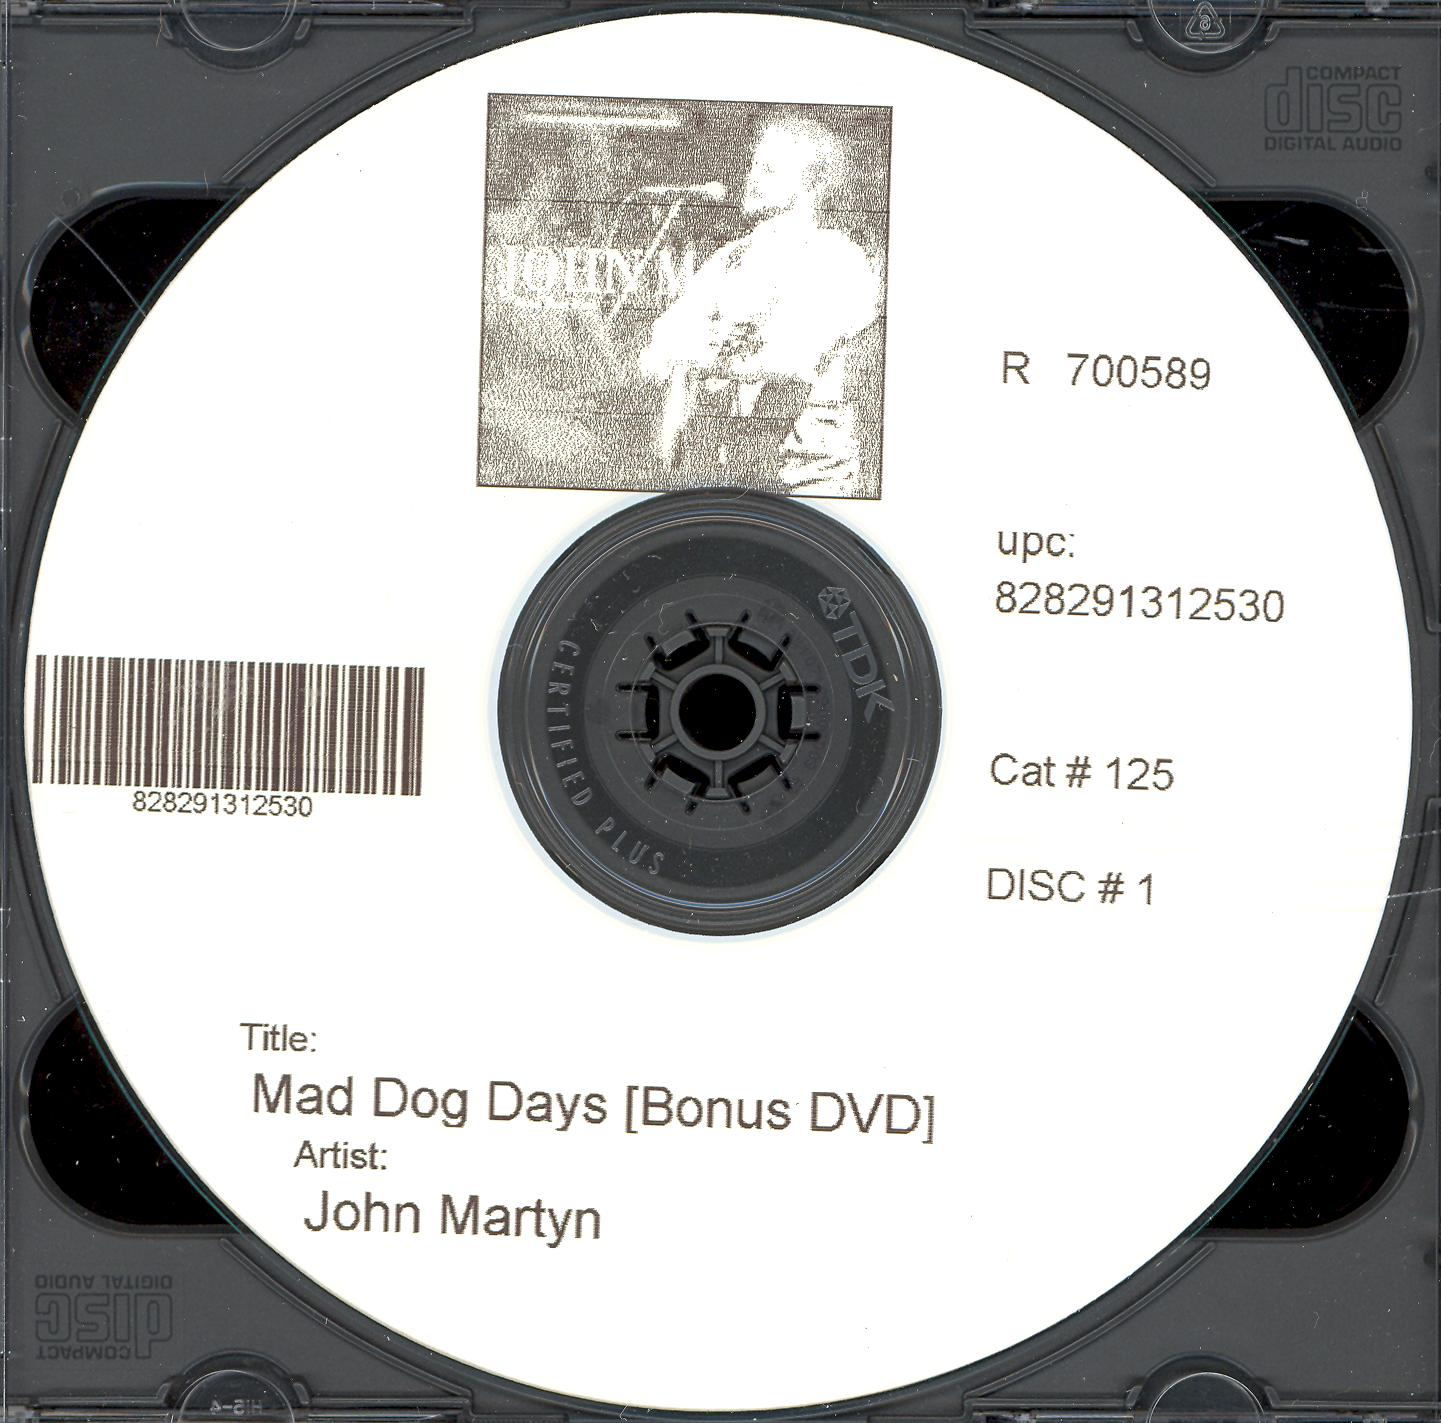 John Martyn: Mad Dog Days